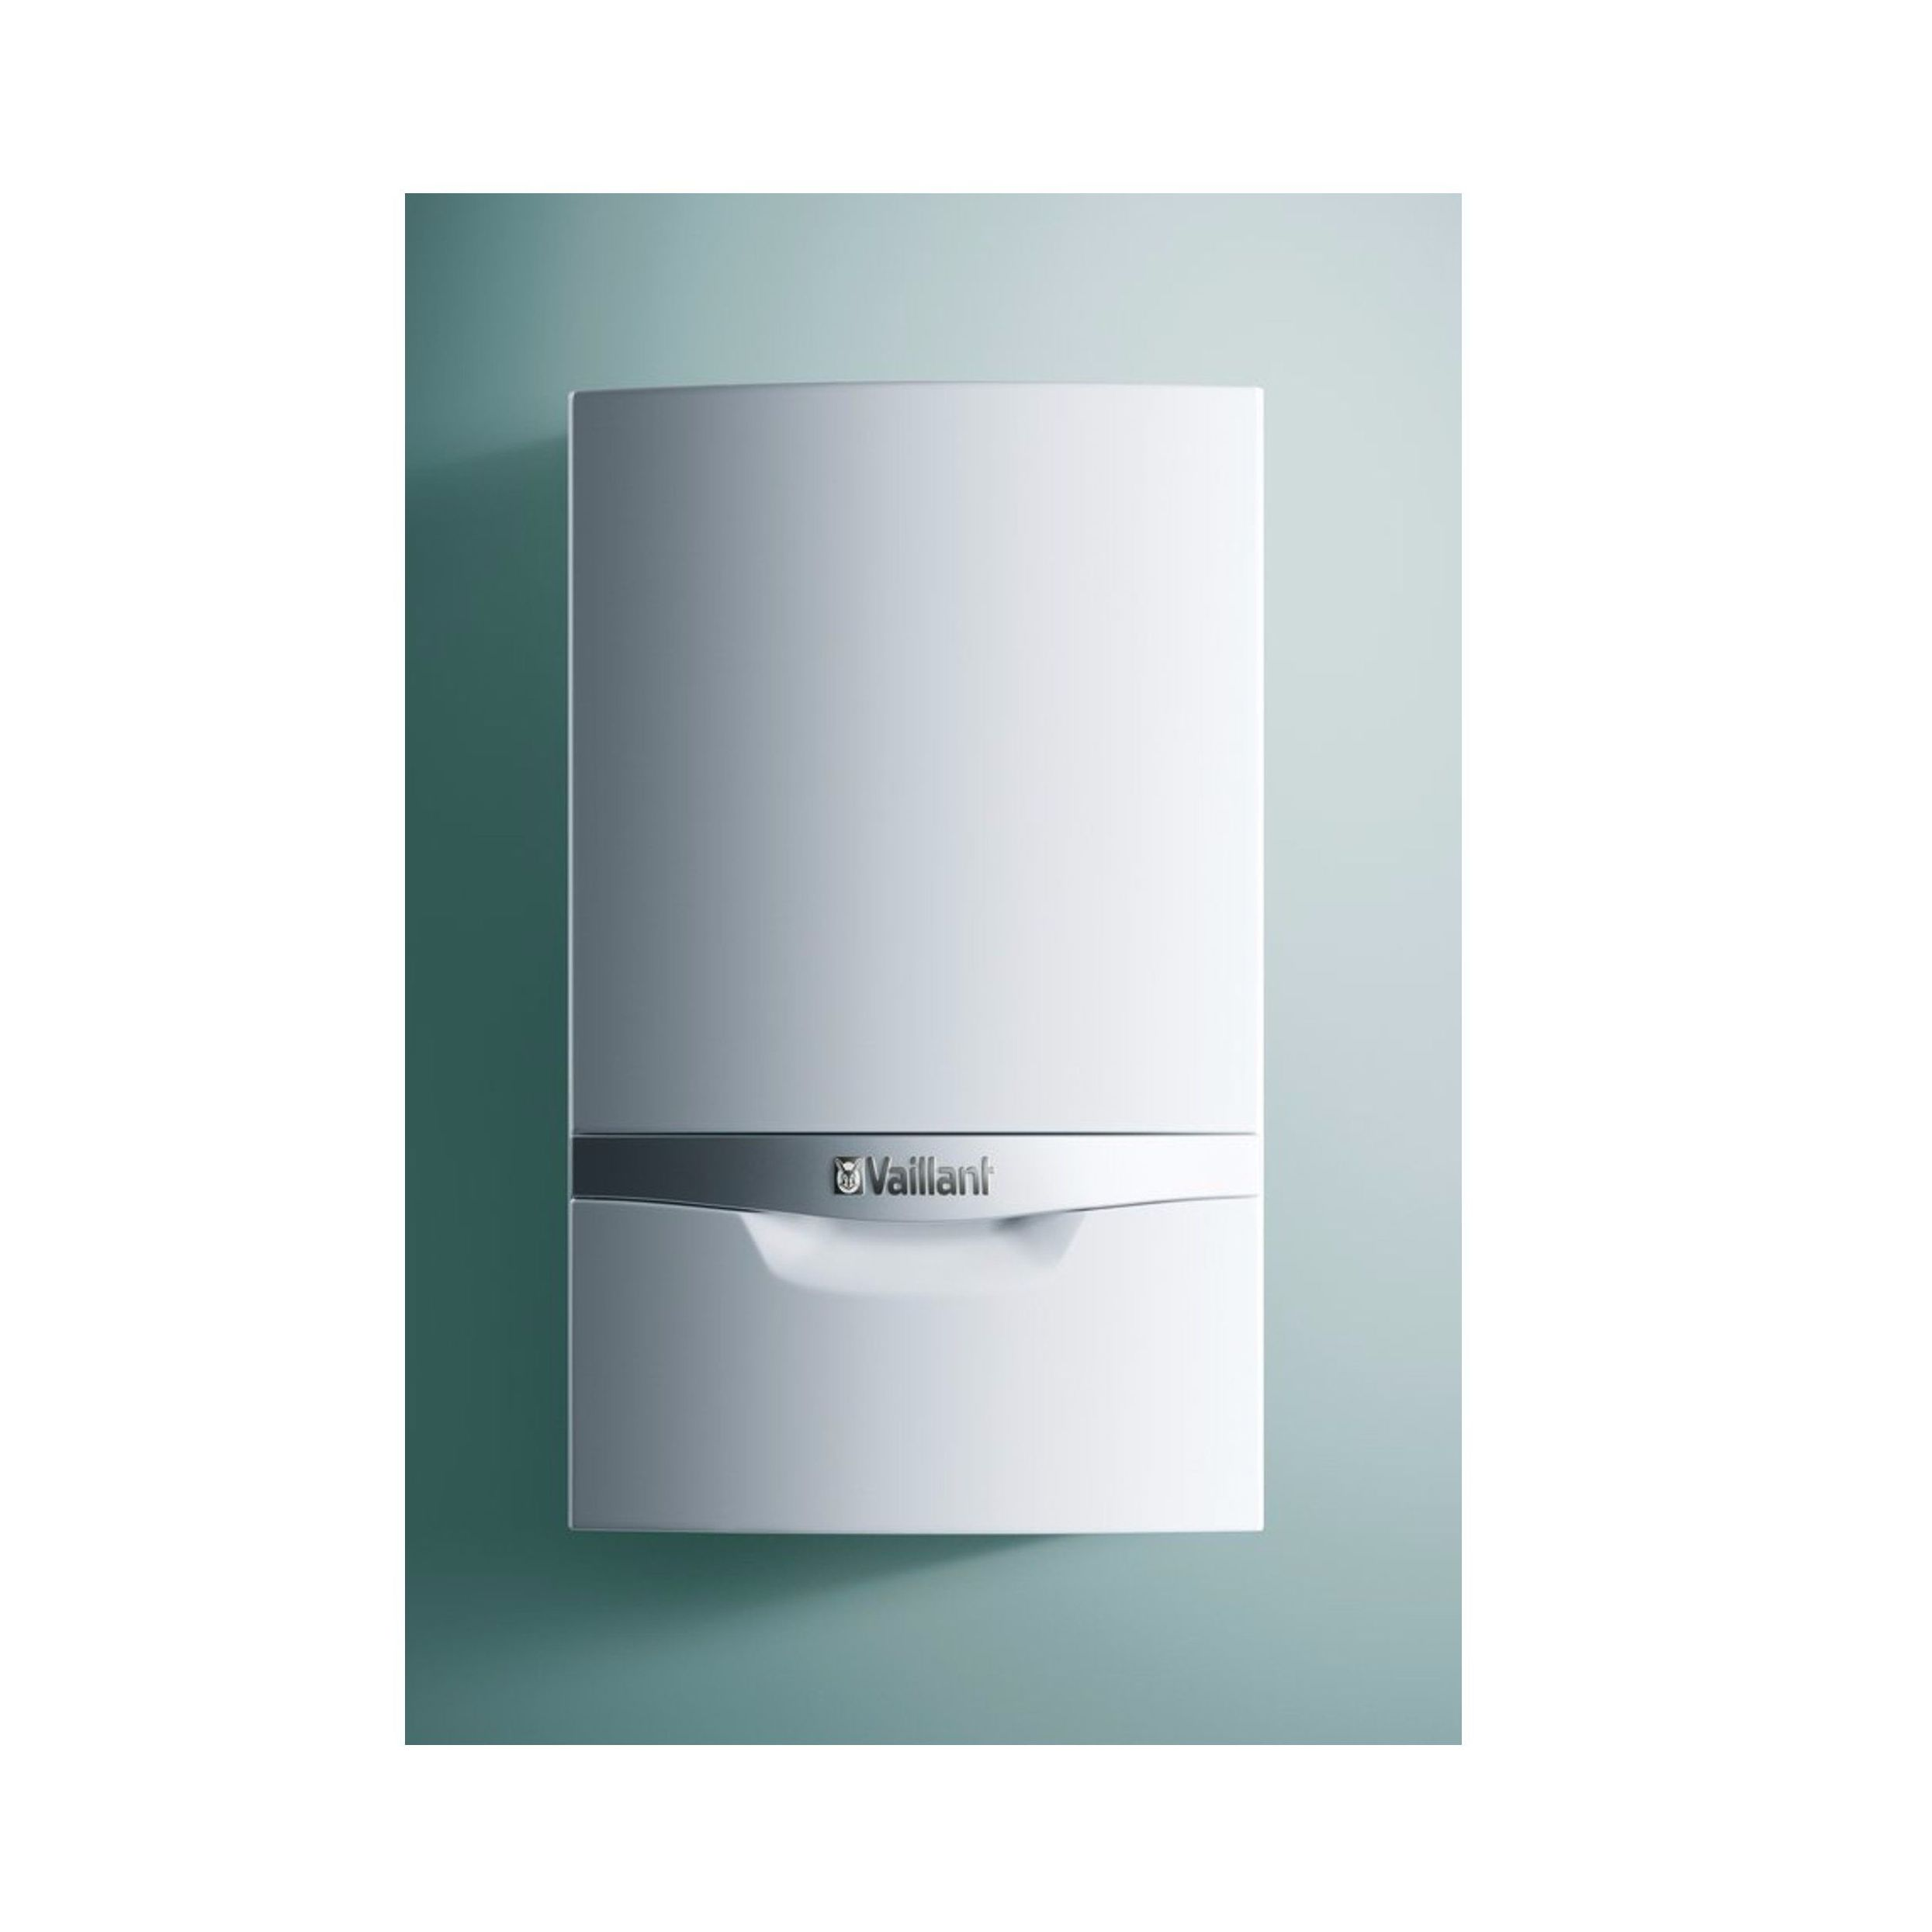 Vaillant  Eco Tec Plus 236: Productos de Valle Gas Clima